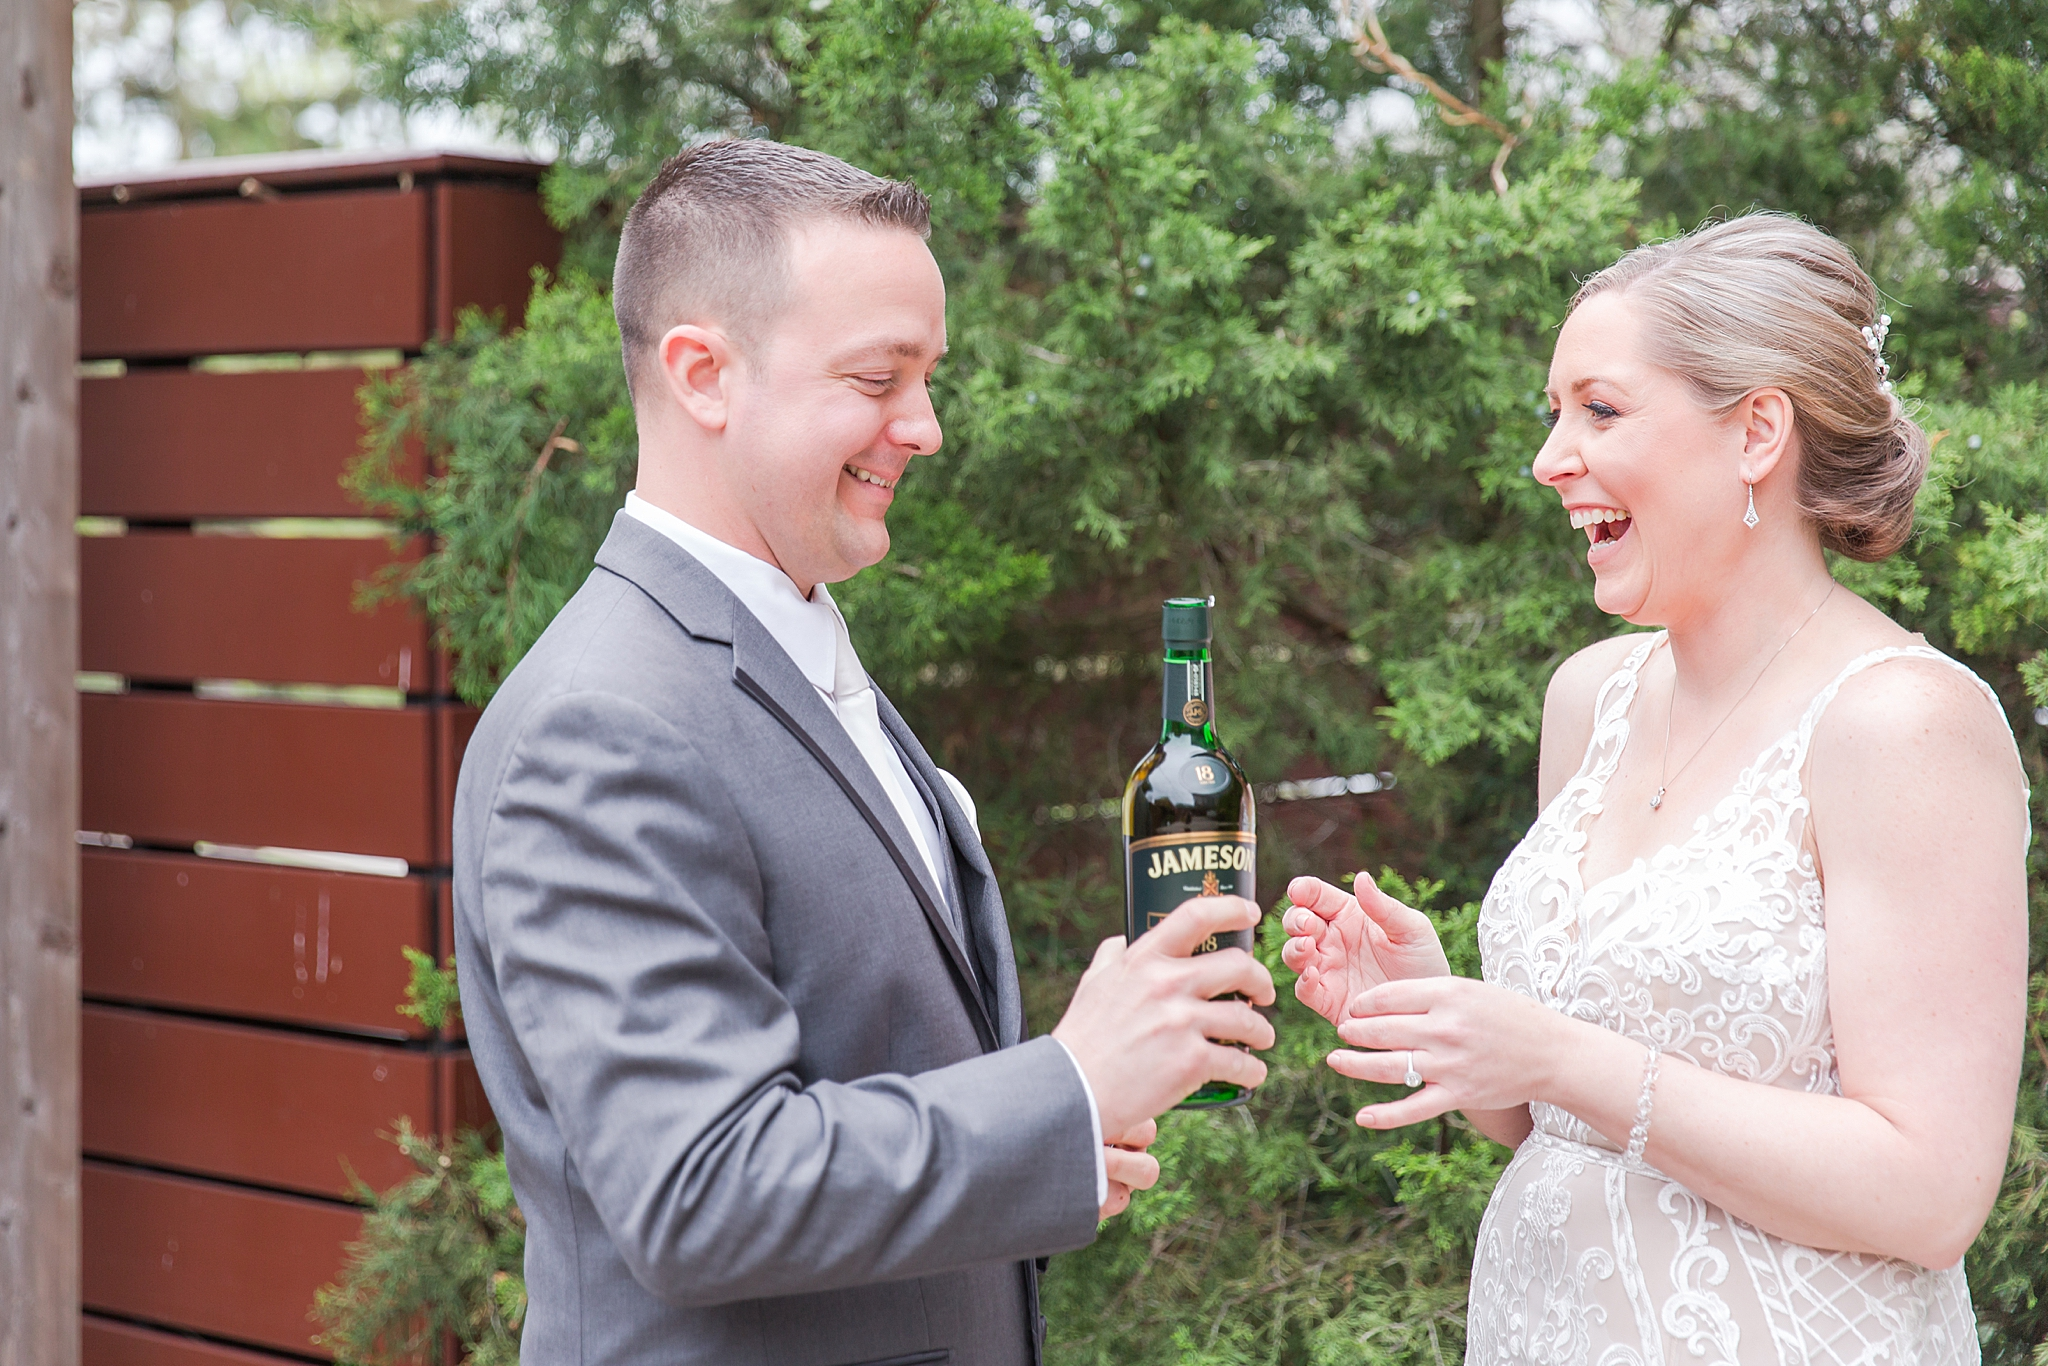 modern-romantic-wedding-photography-at-webers-in-ann-arbor-michigan-by-courtney-carolyn-photography_0028.jpg